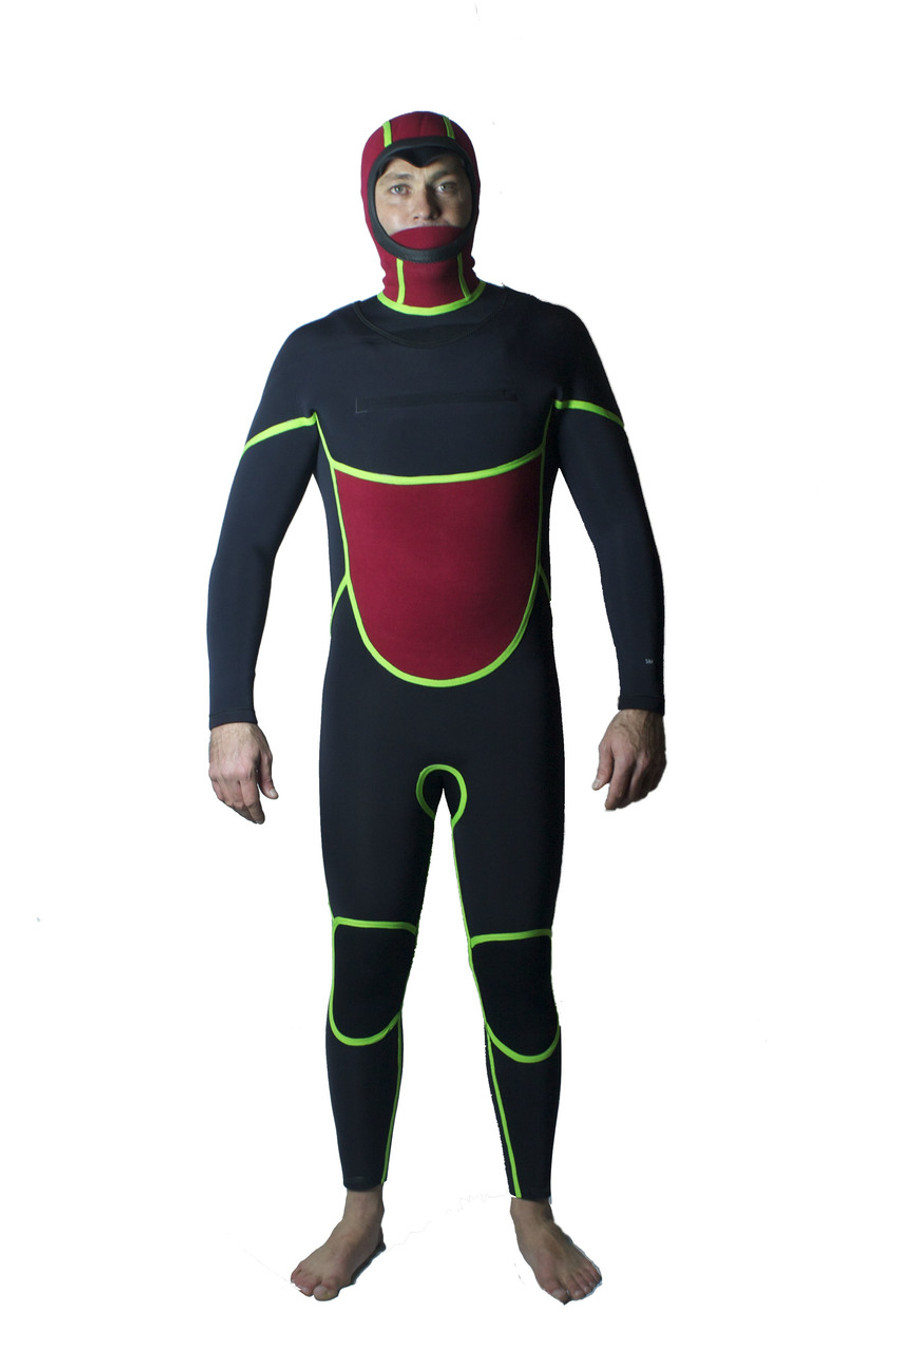 Inside: Lunasurf Yamamoto wetsuit 6.4mm thermal hooded. Thermal chest and back.